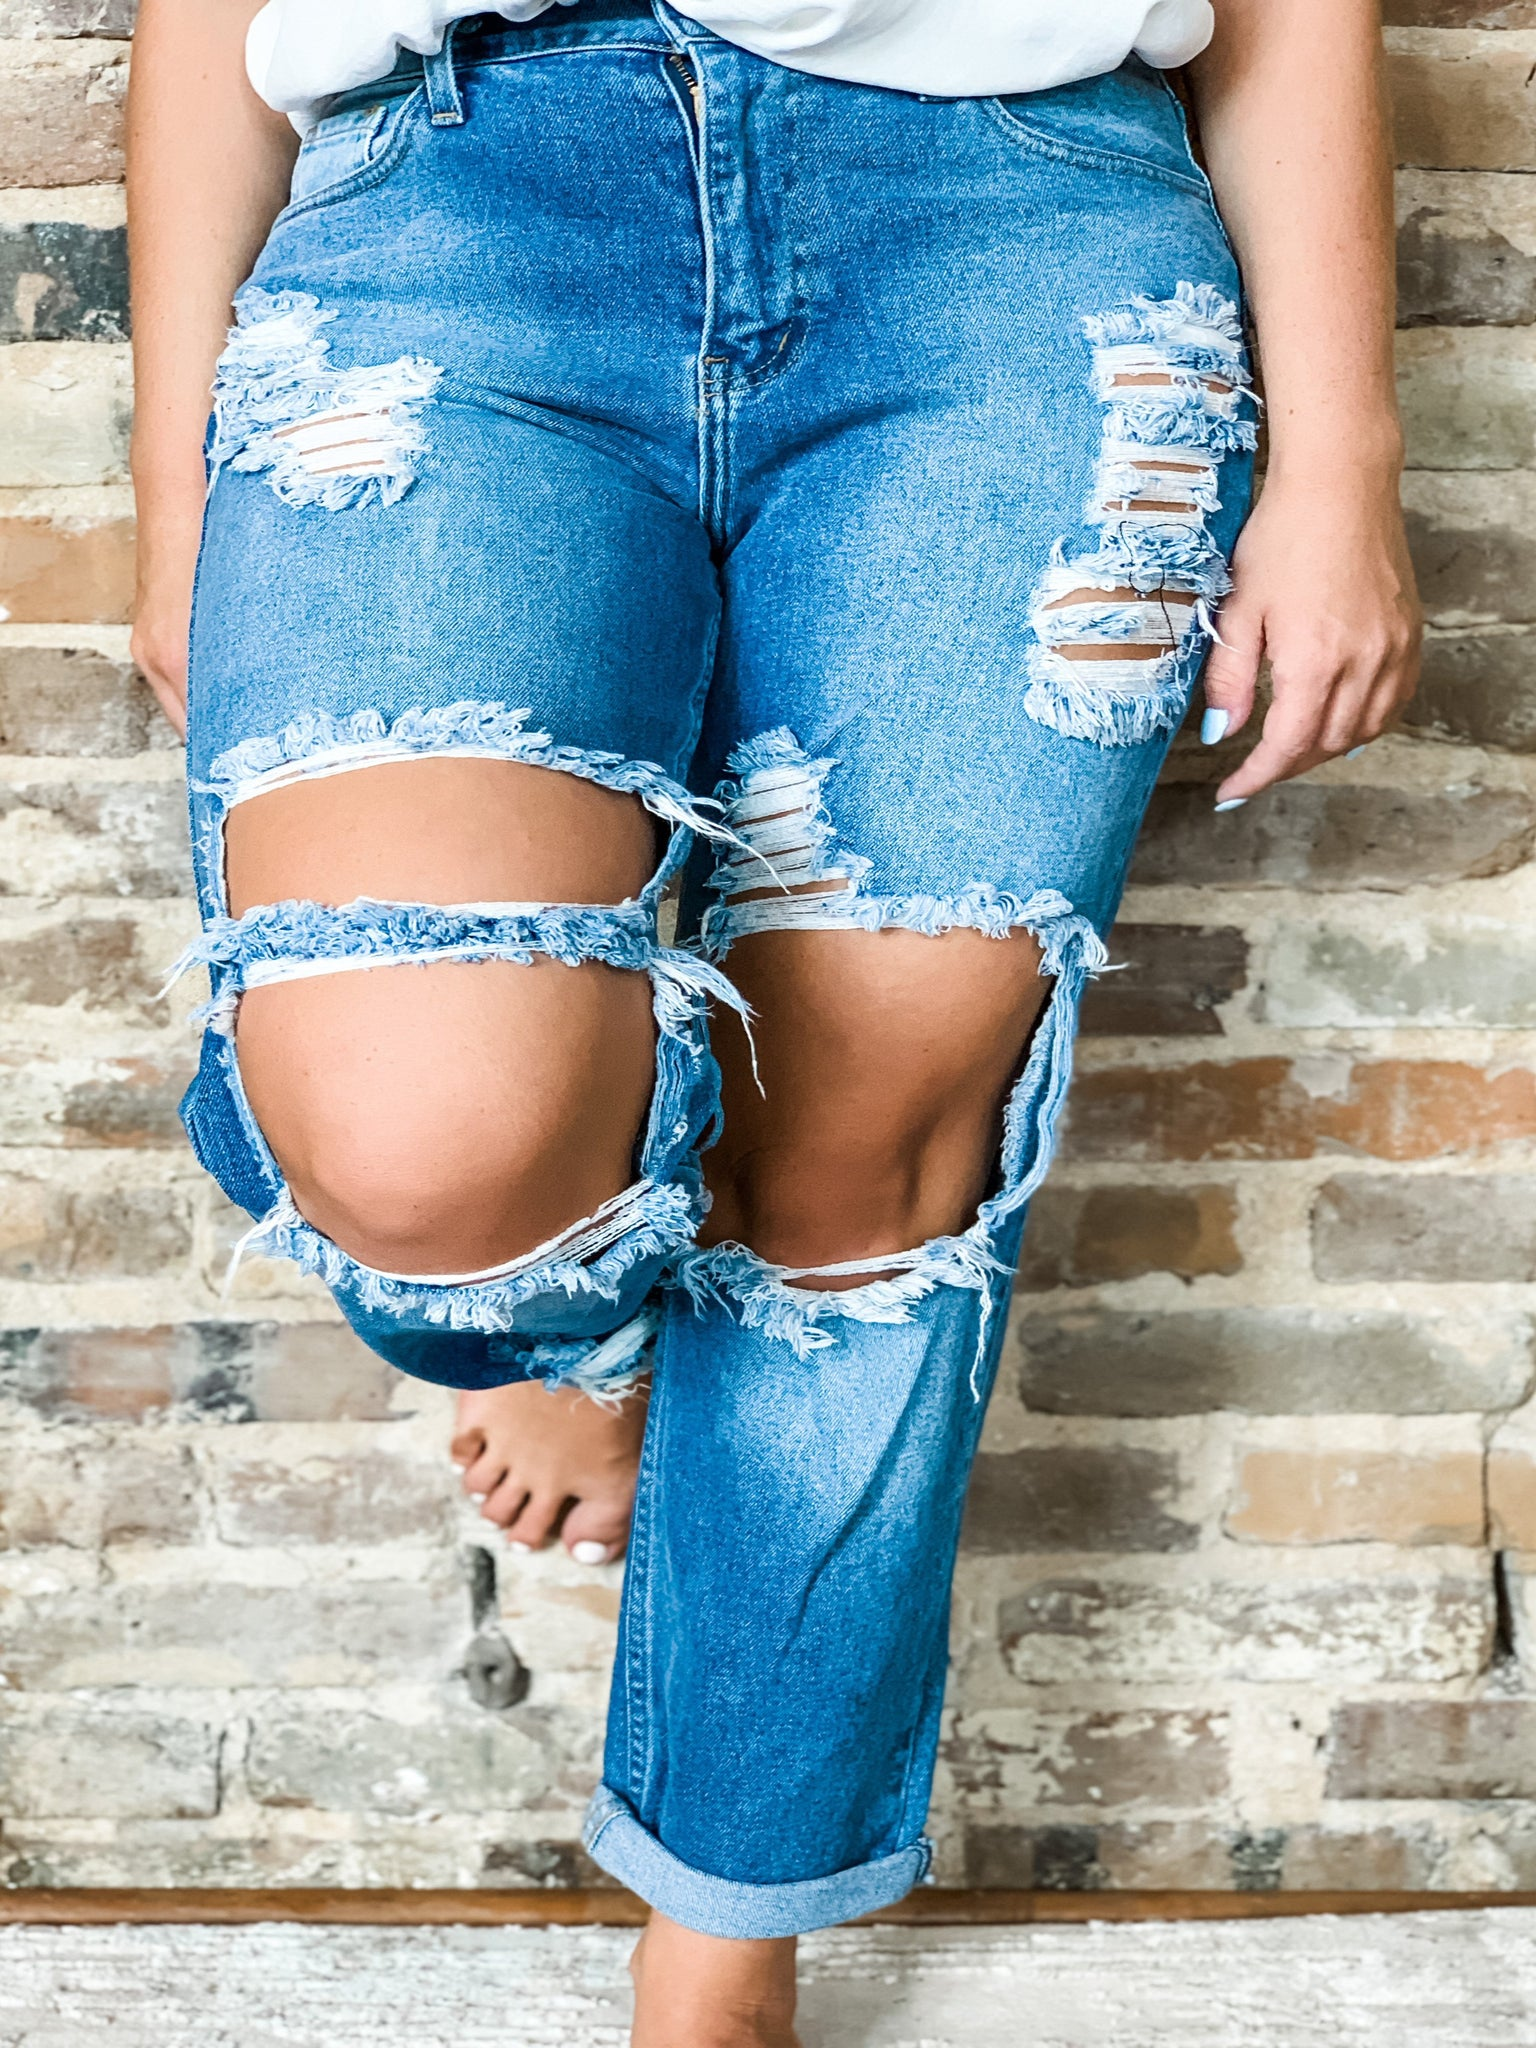 American Distressed Jean - Vintage Cotton Boutique